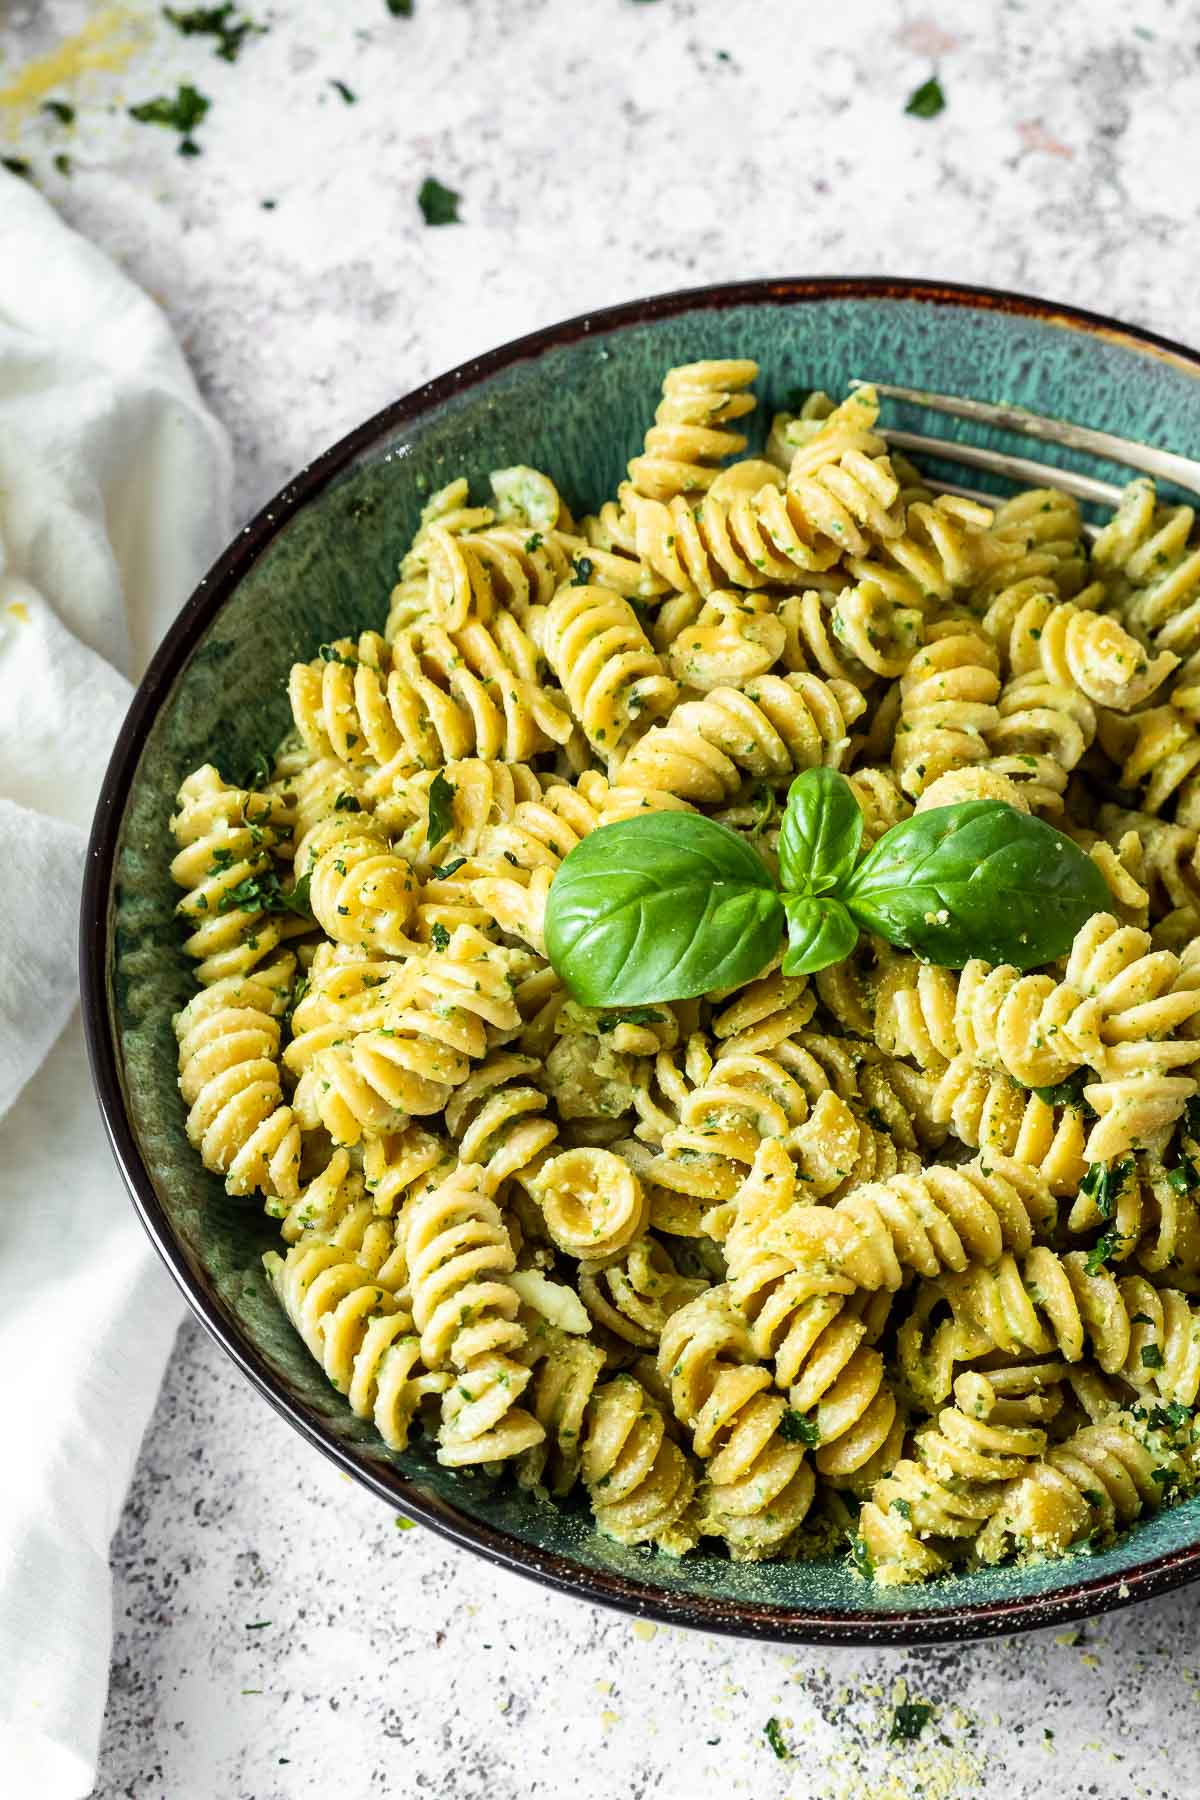 Pesto Cream Sauce with Pasta served in a bowl.